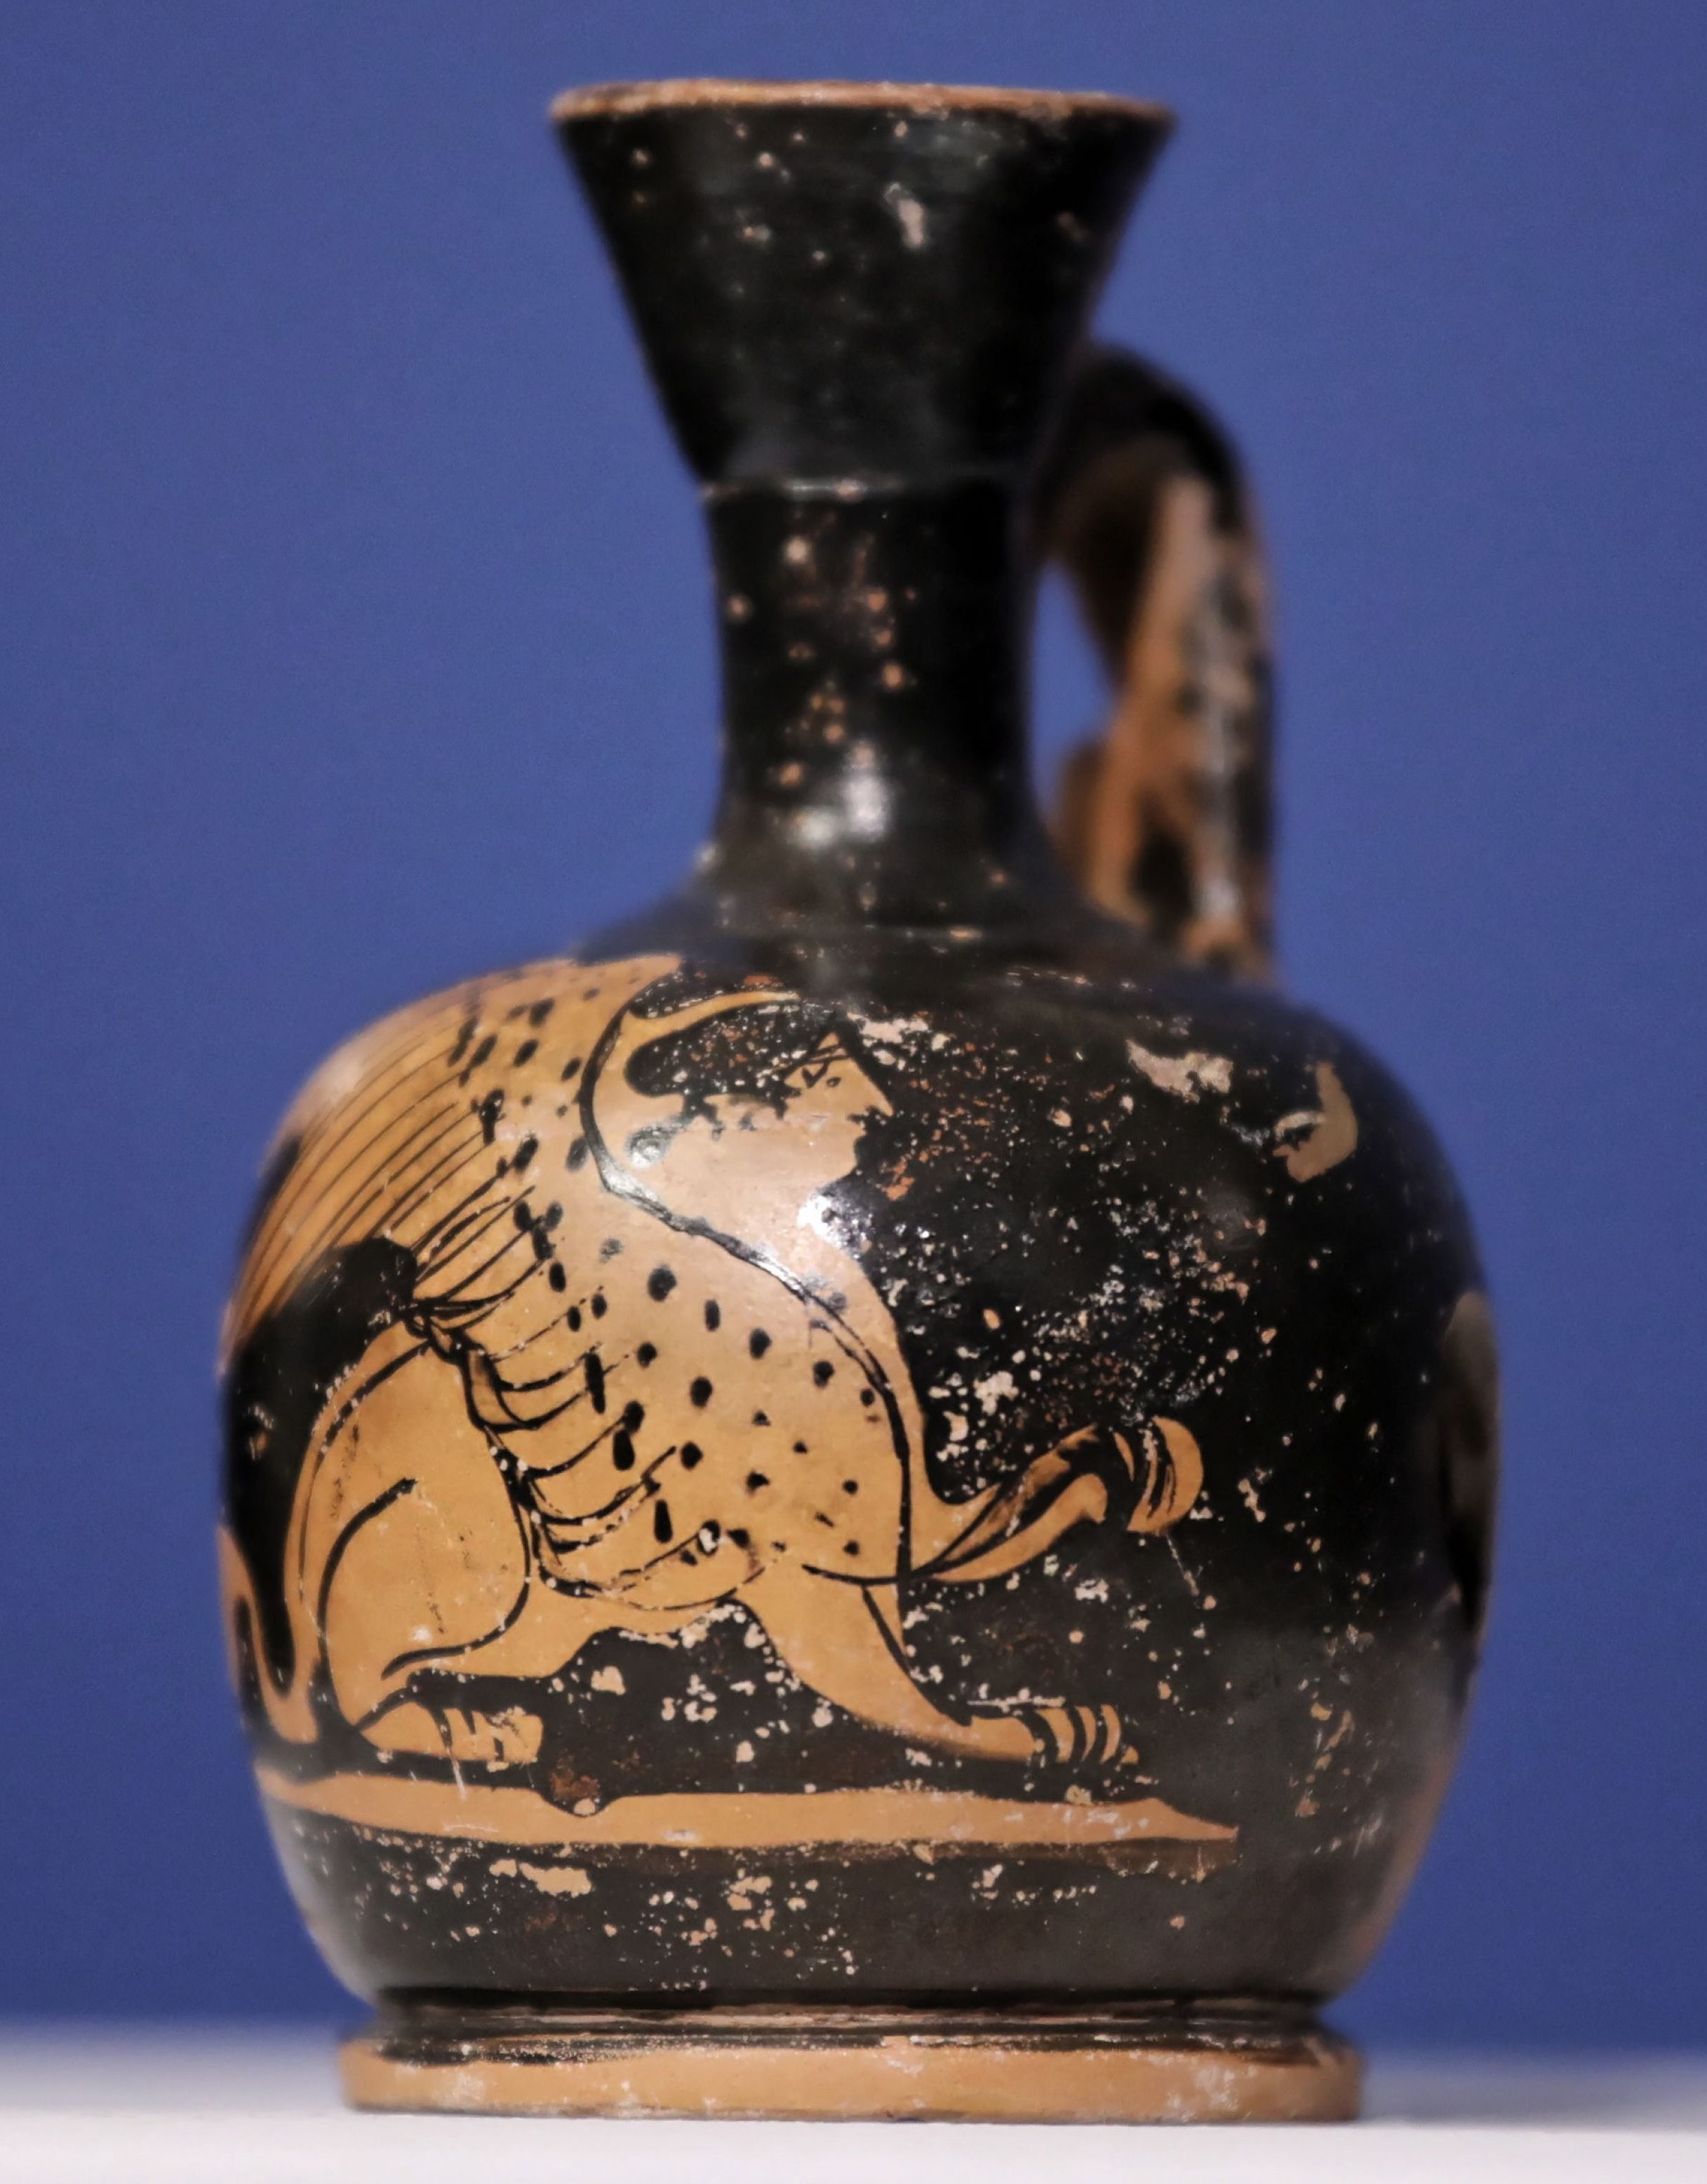 Greek vase looted from Warsaw museum during WWII returned